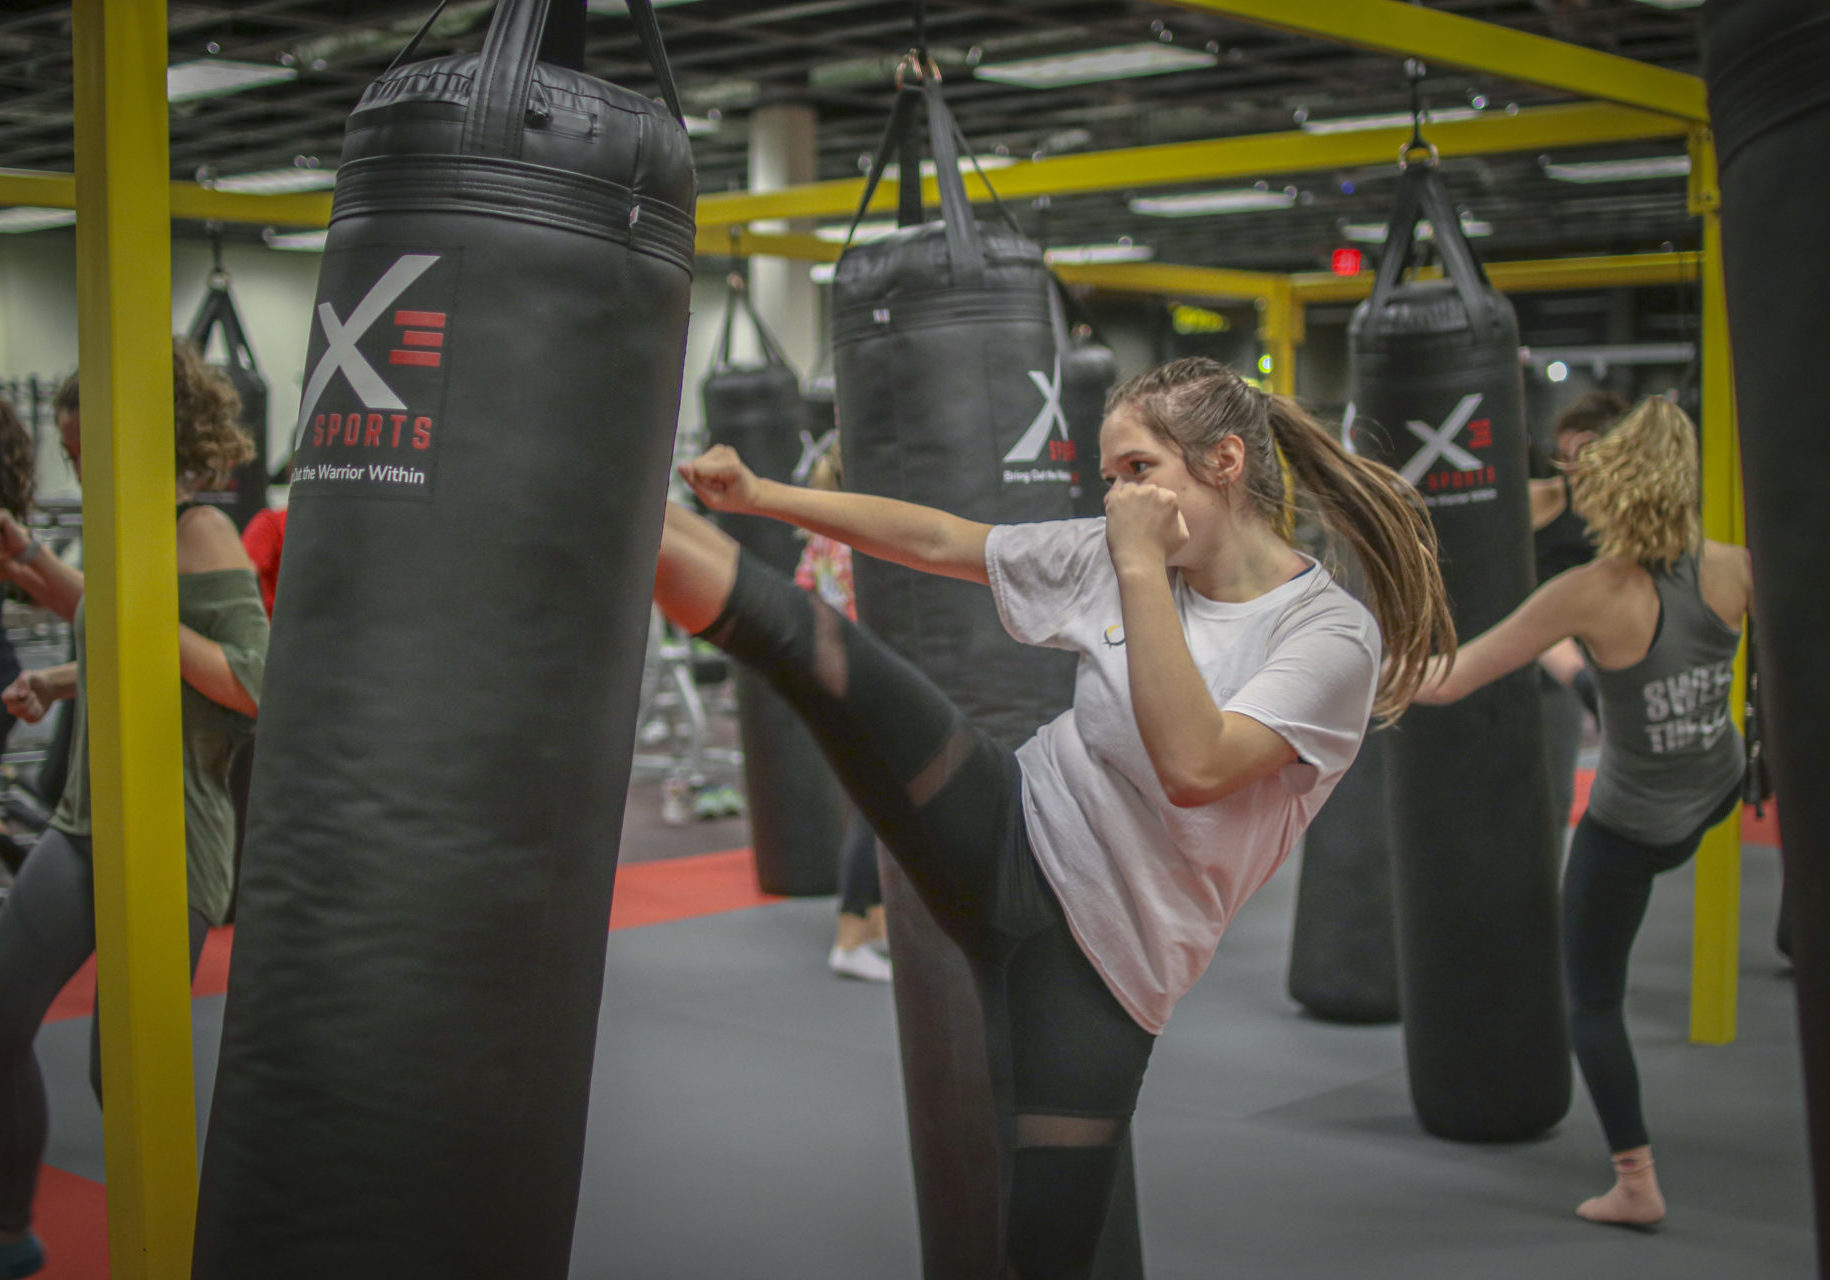 X3 sports kickboxing classes atlanta